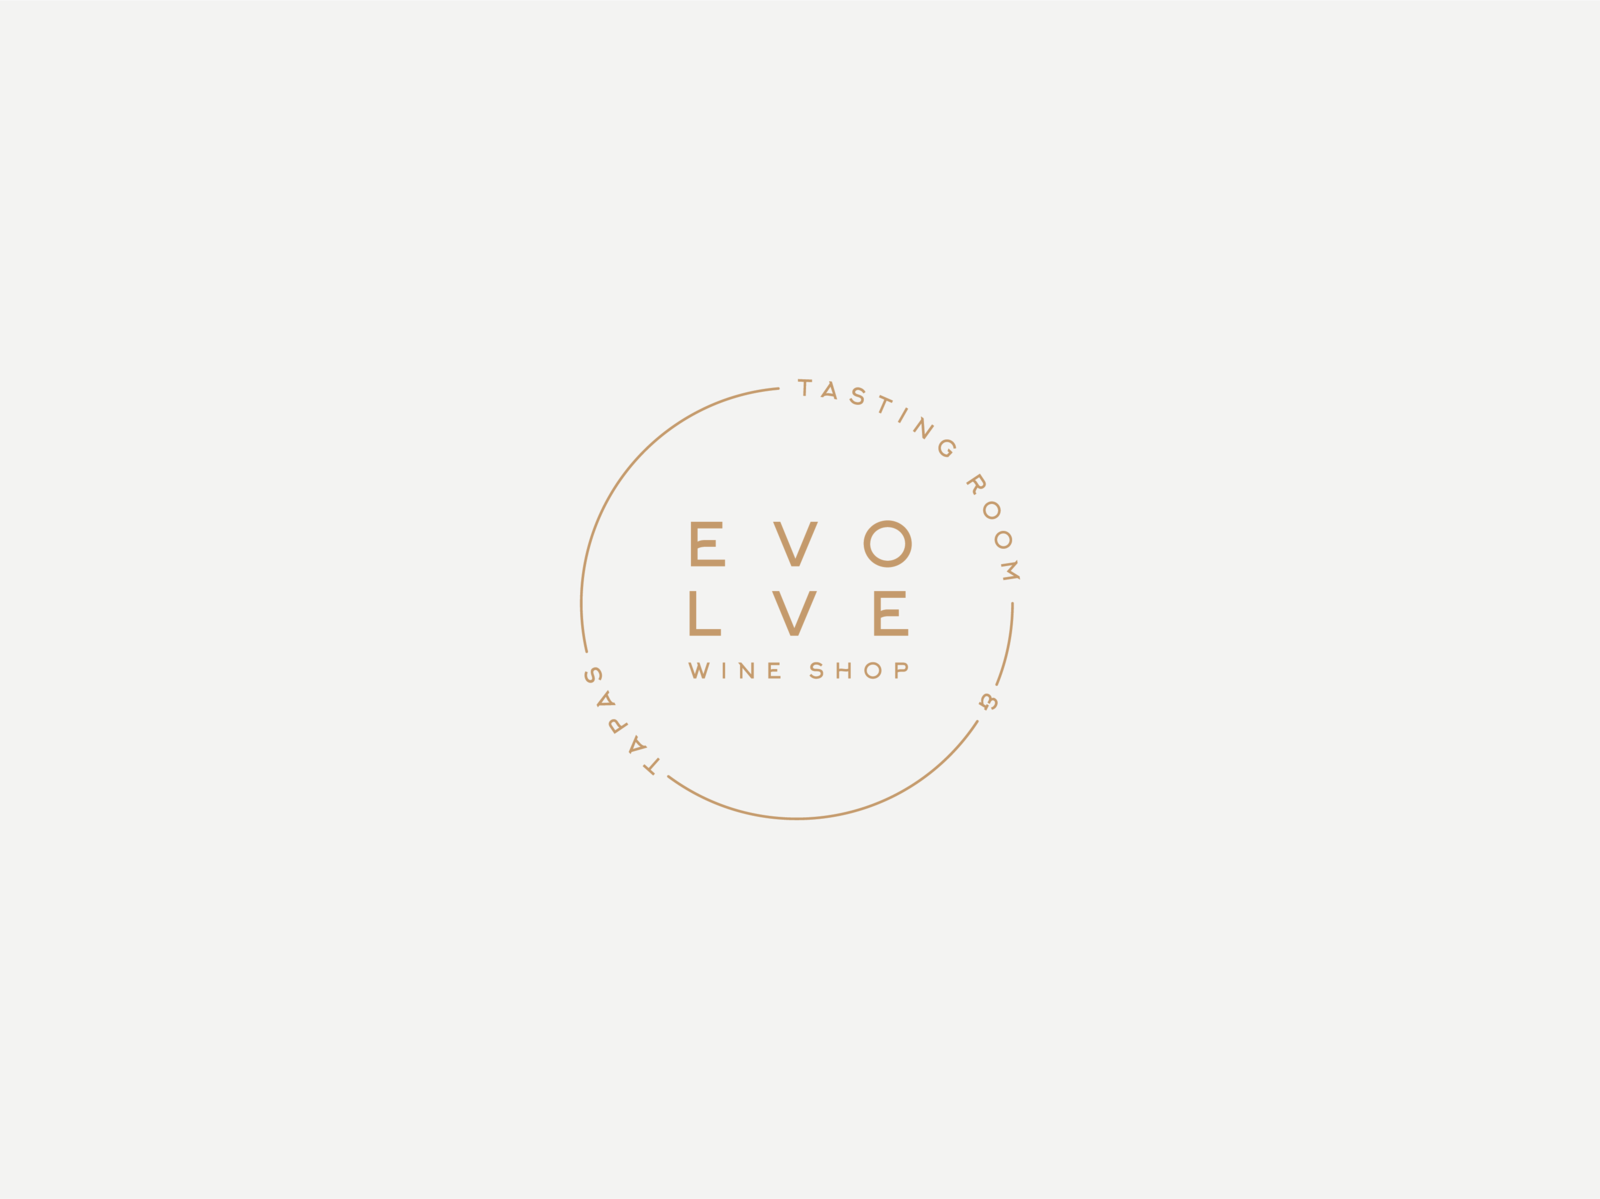 Evolve Wine Shop Badge graphic design branding minimal branding minimal round logo badge logo design logo